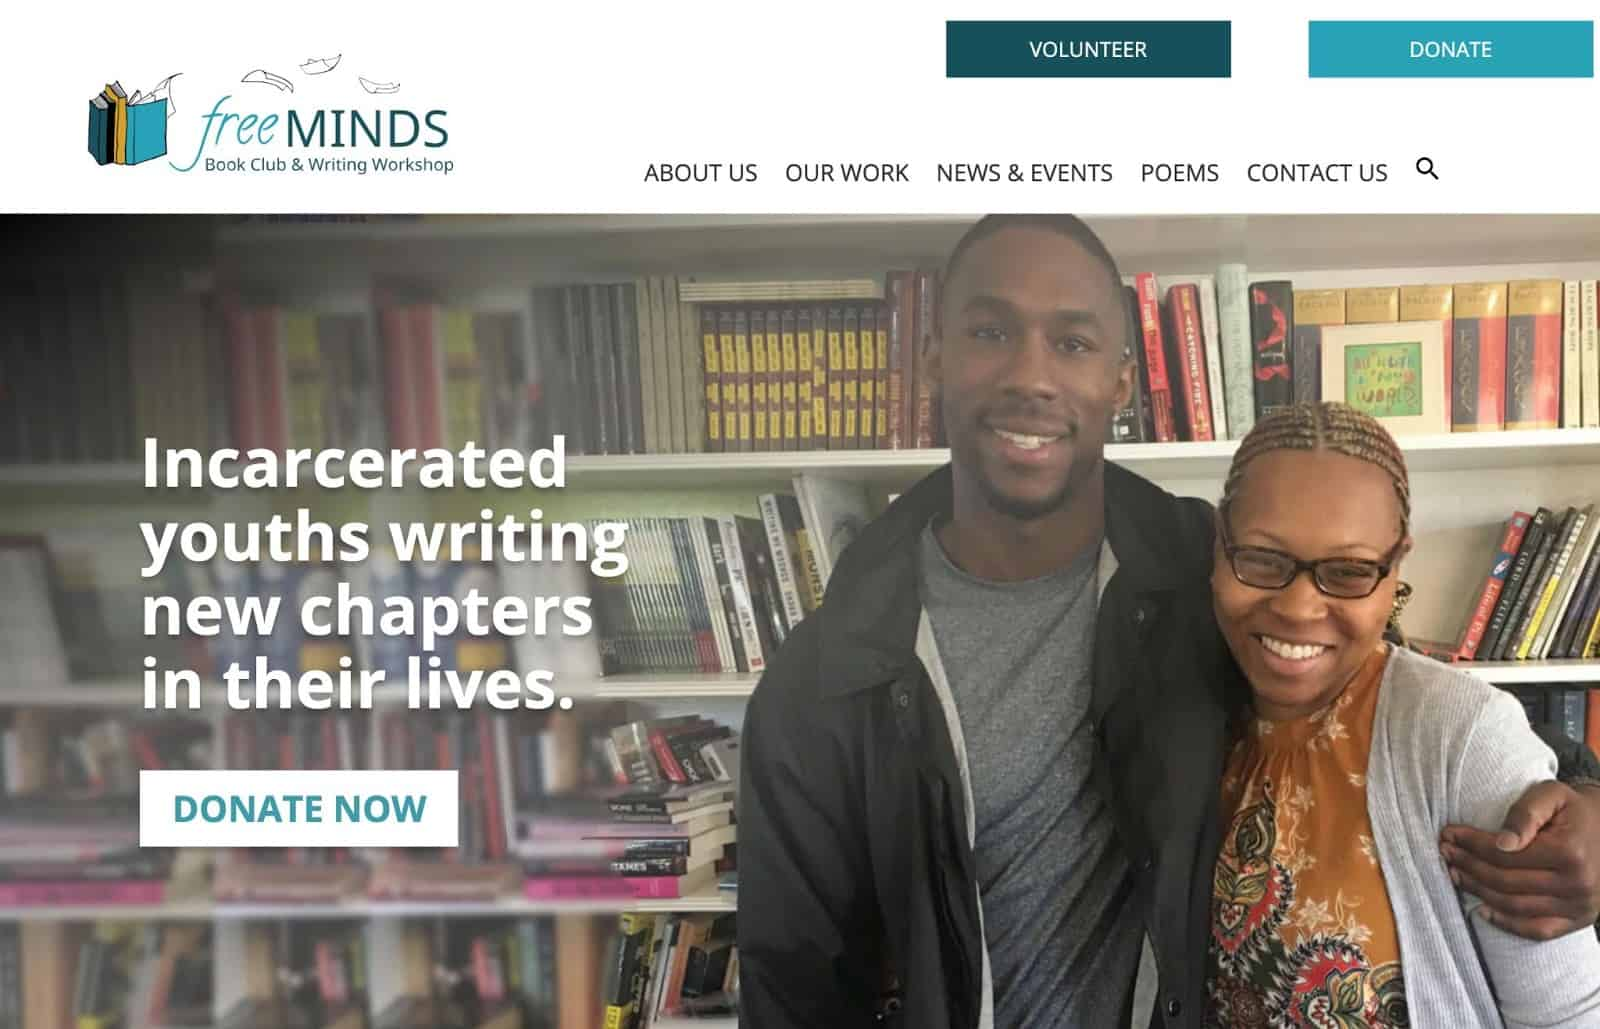 Free Minds Book Club & Writing Workshop for Incarcerated Youth 2021-04-10 at 6.04.00 PM